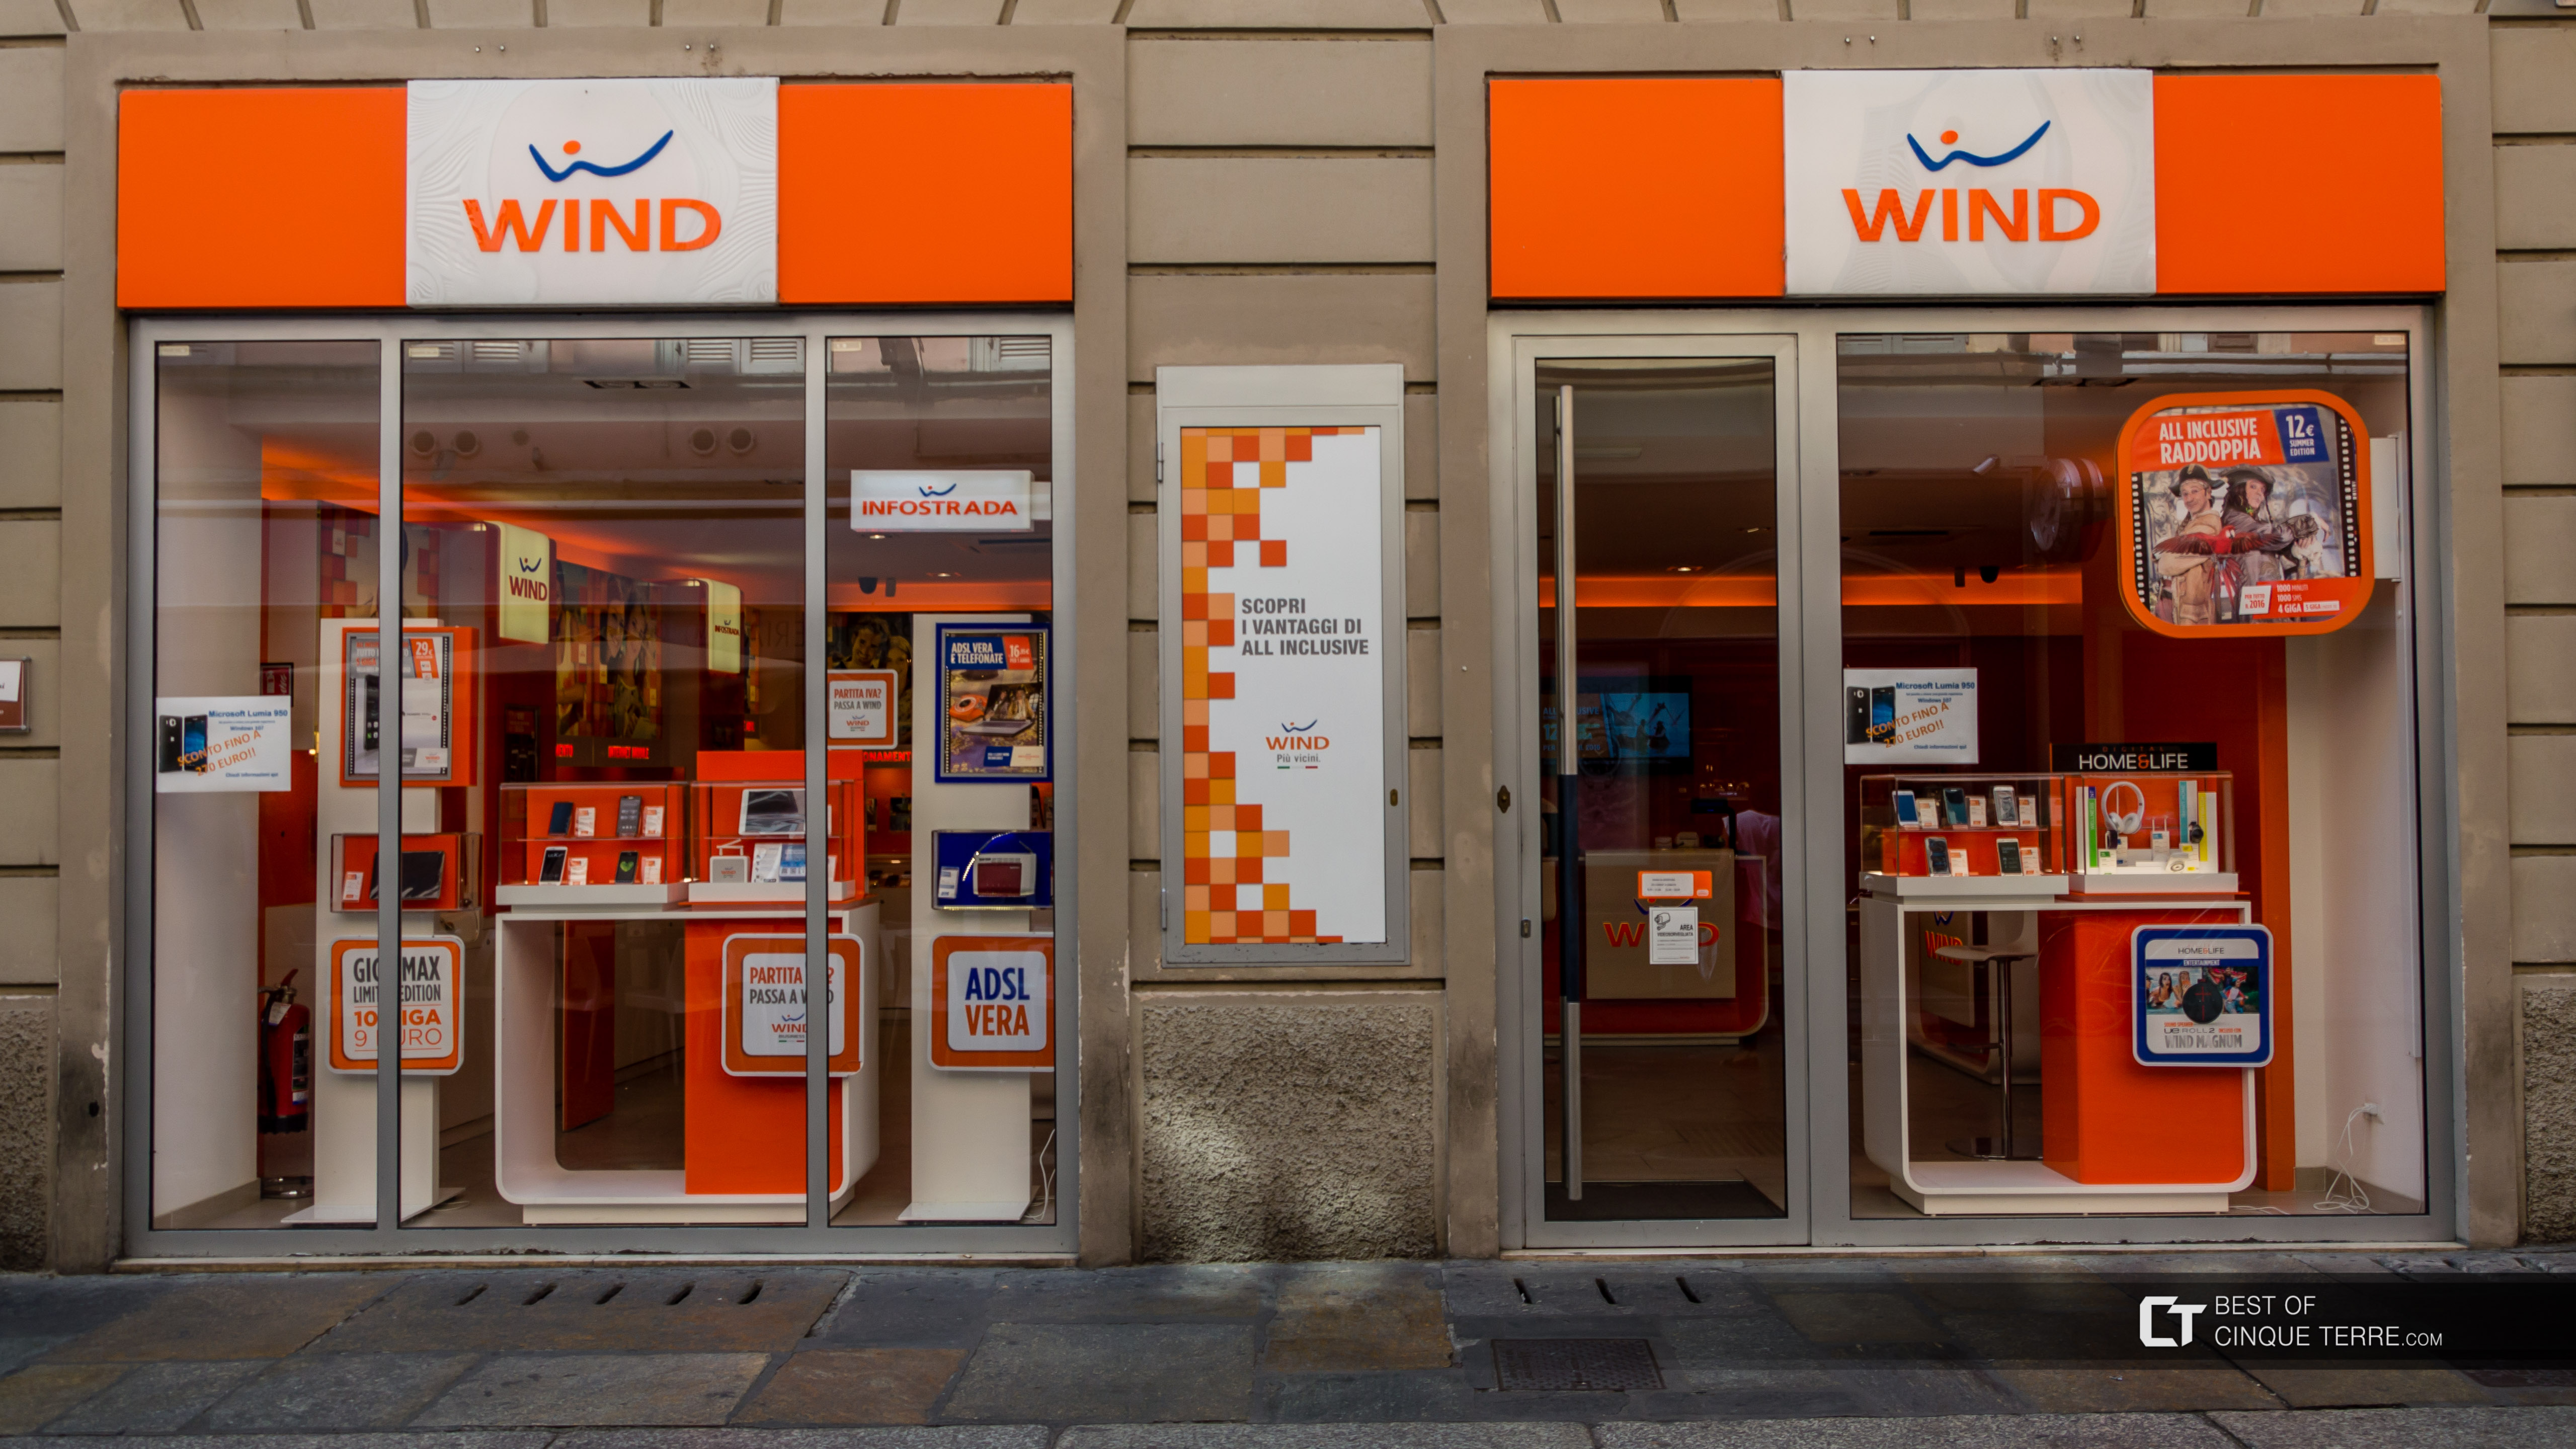 Wind, mobile operator store, Italy